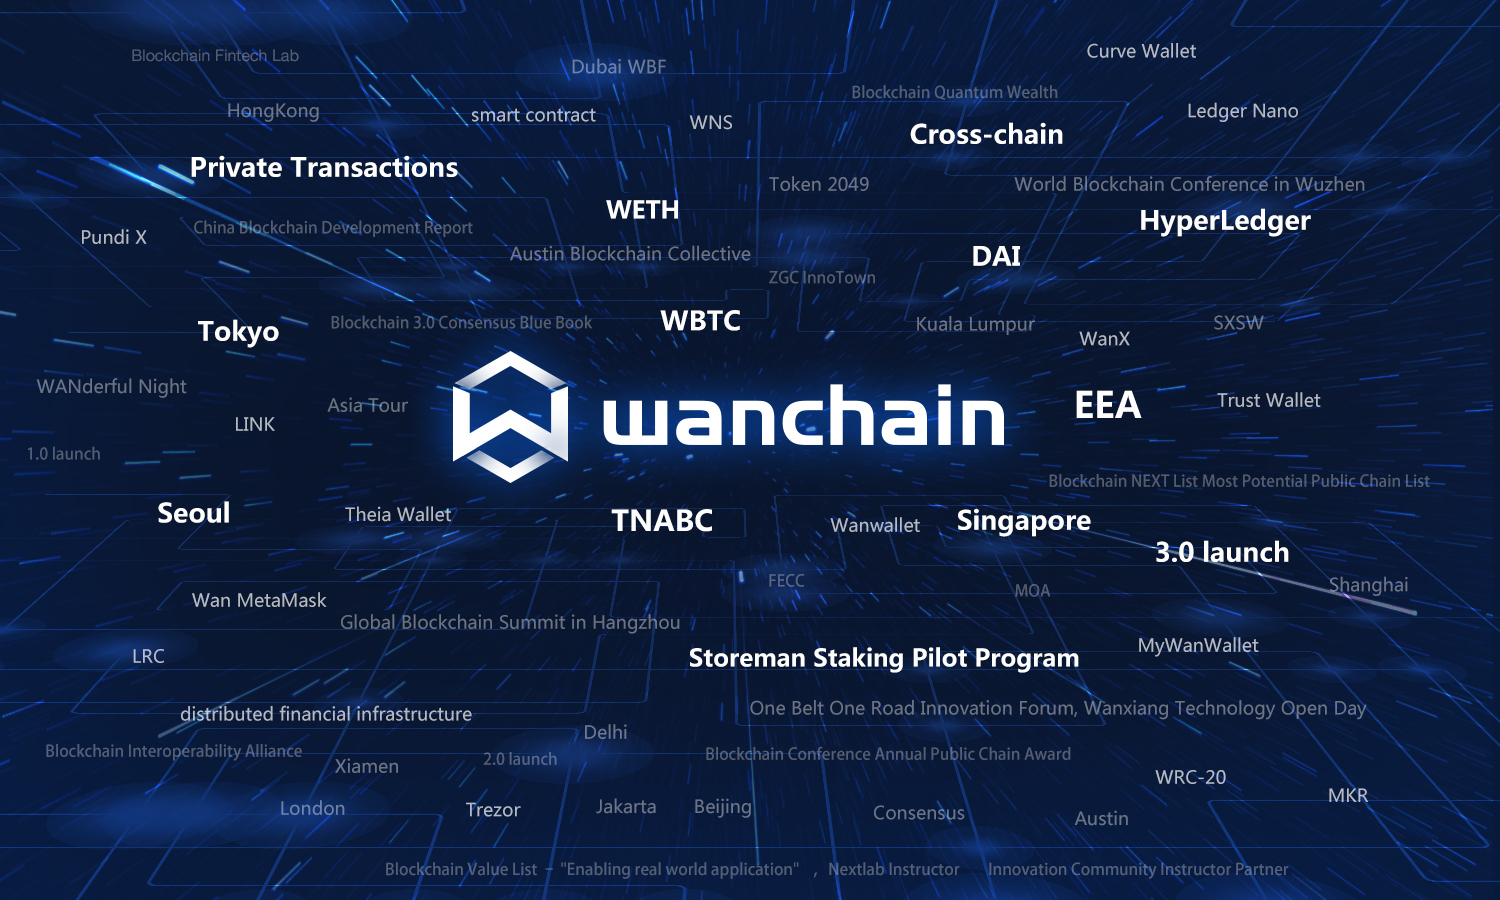 Wanchain Turns One — Video from Founder and CEO Jack Lu